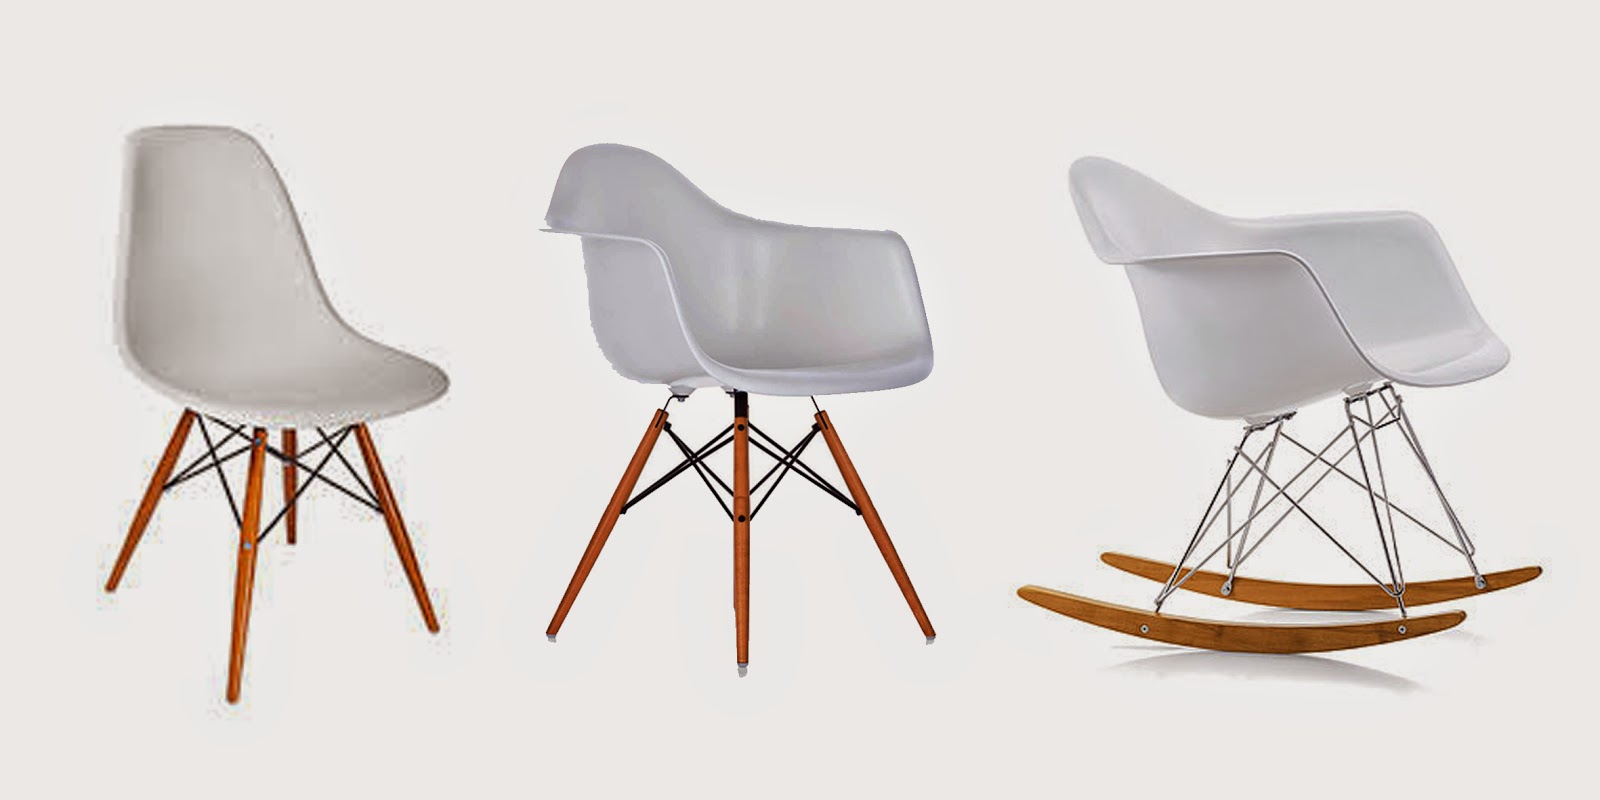 Emejing Chaises Eames Photos